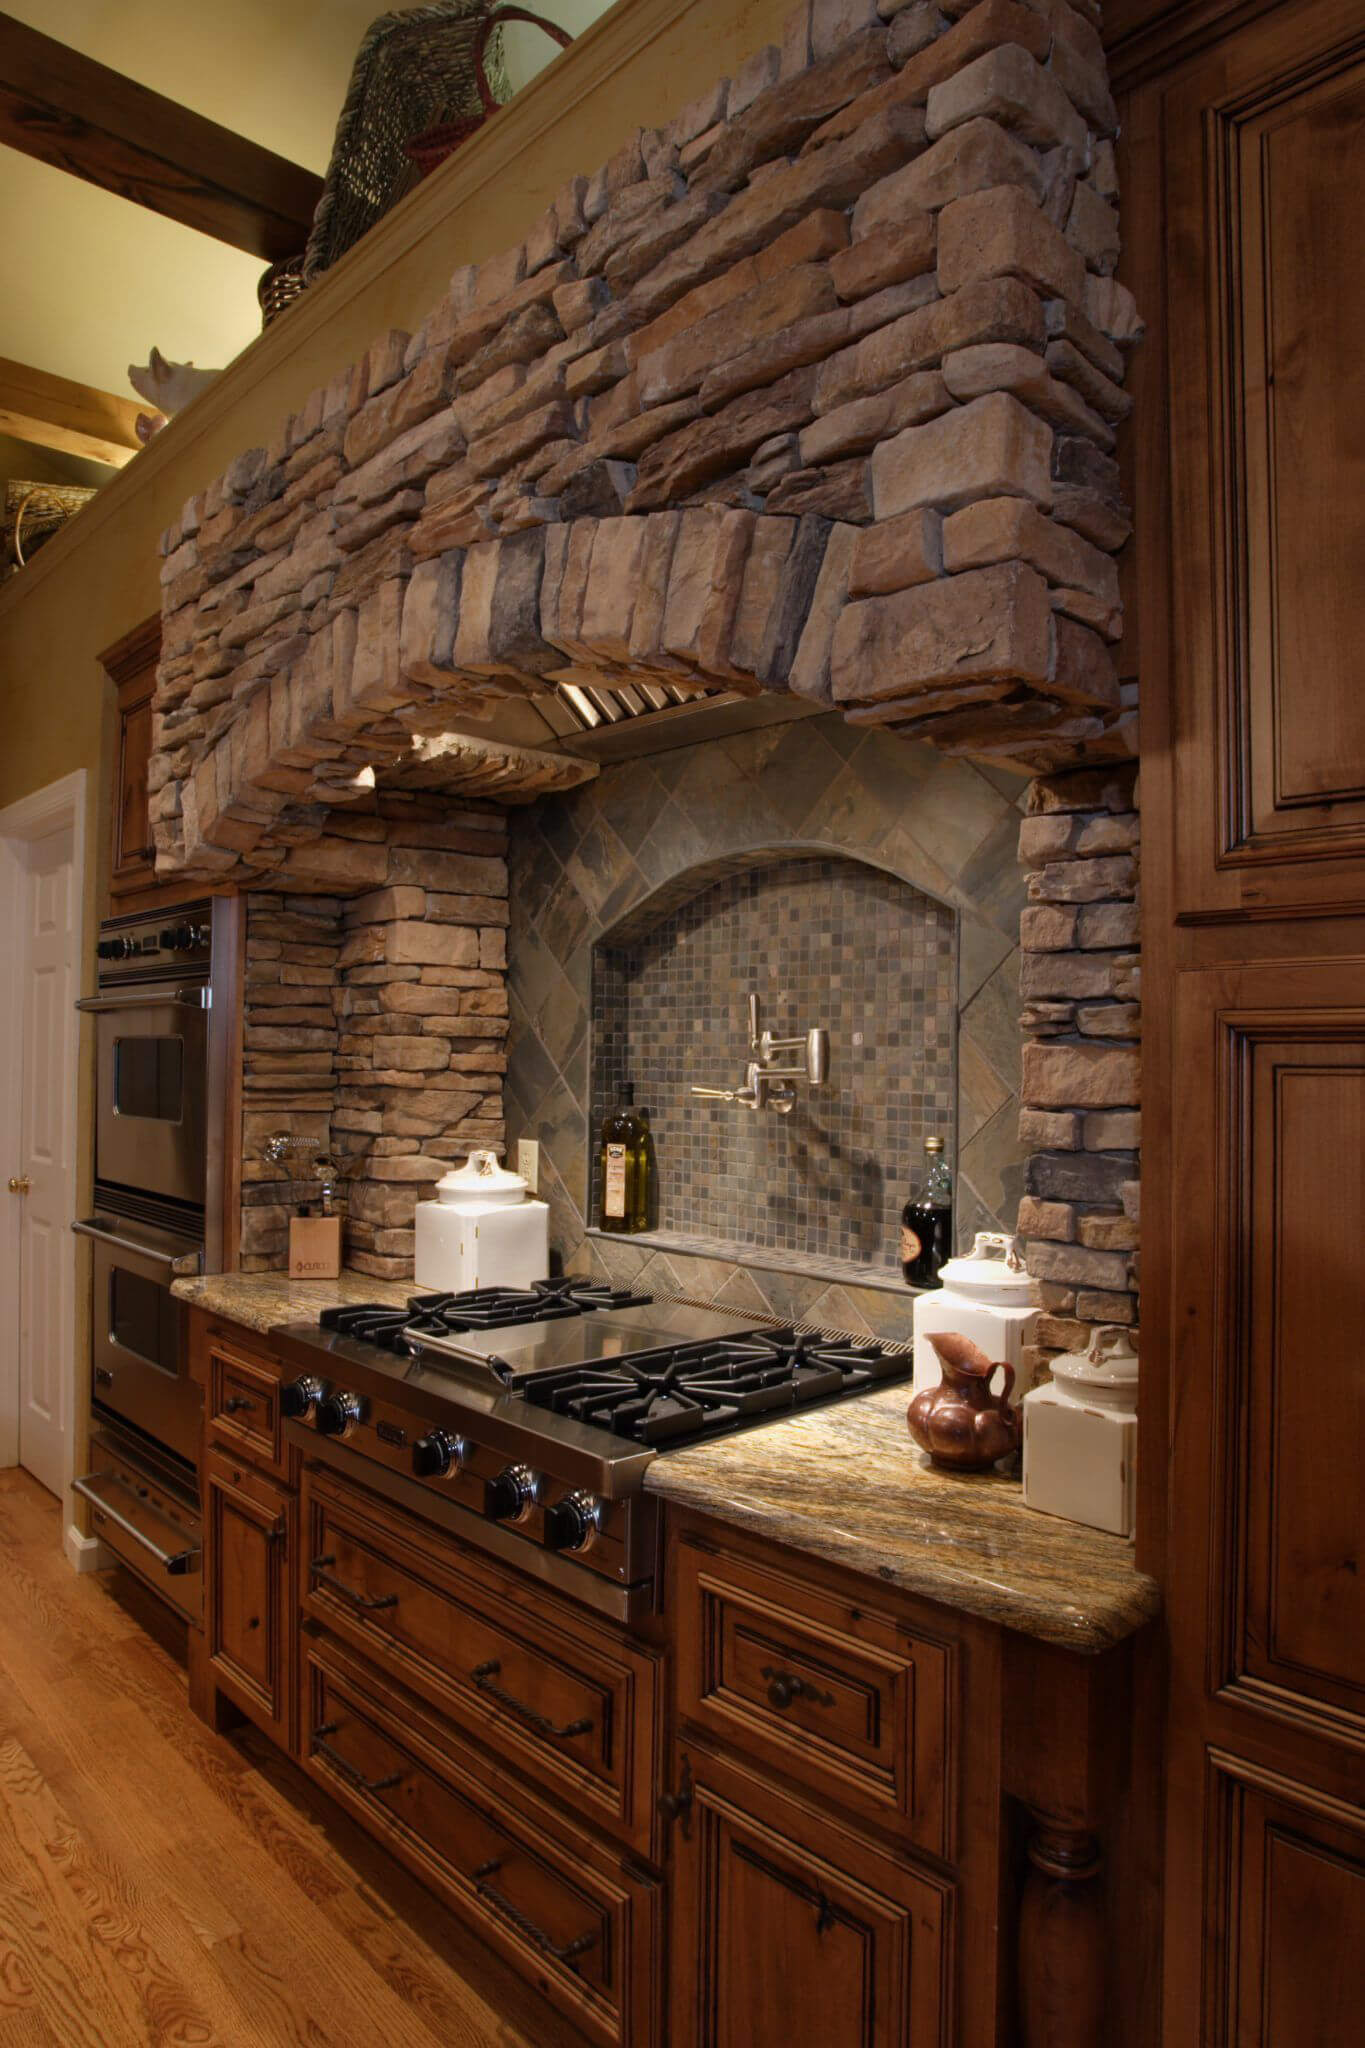 14. Classic Italian Brick Kitchen Arch